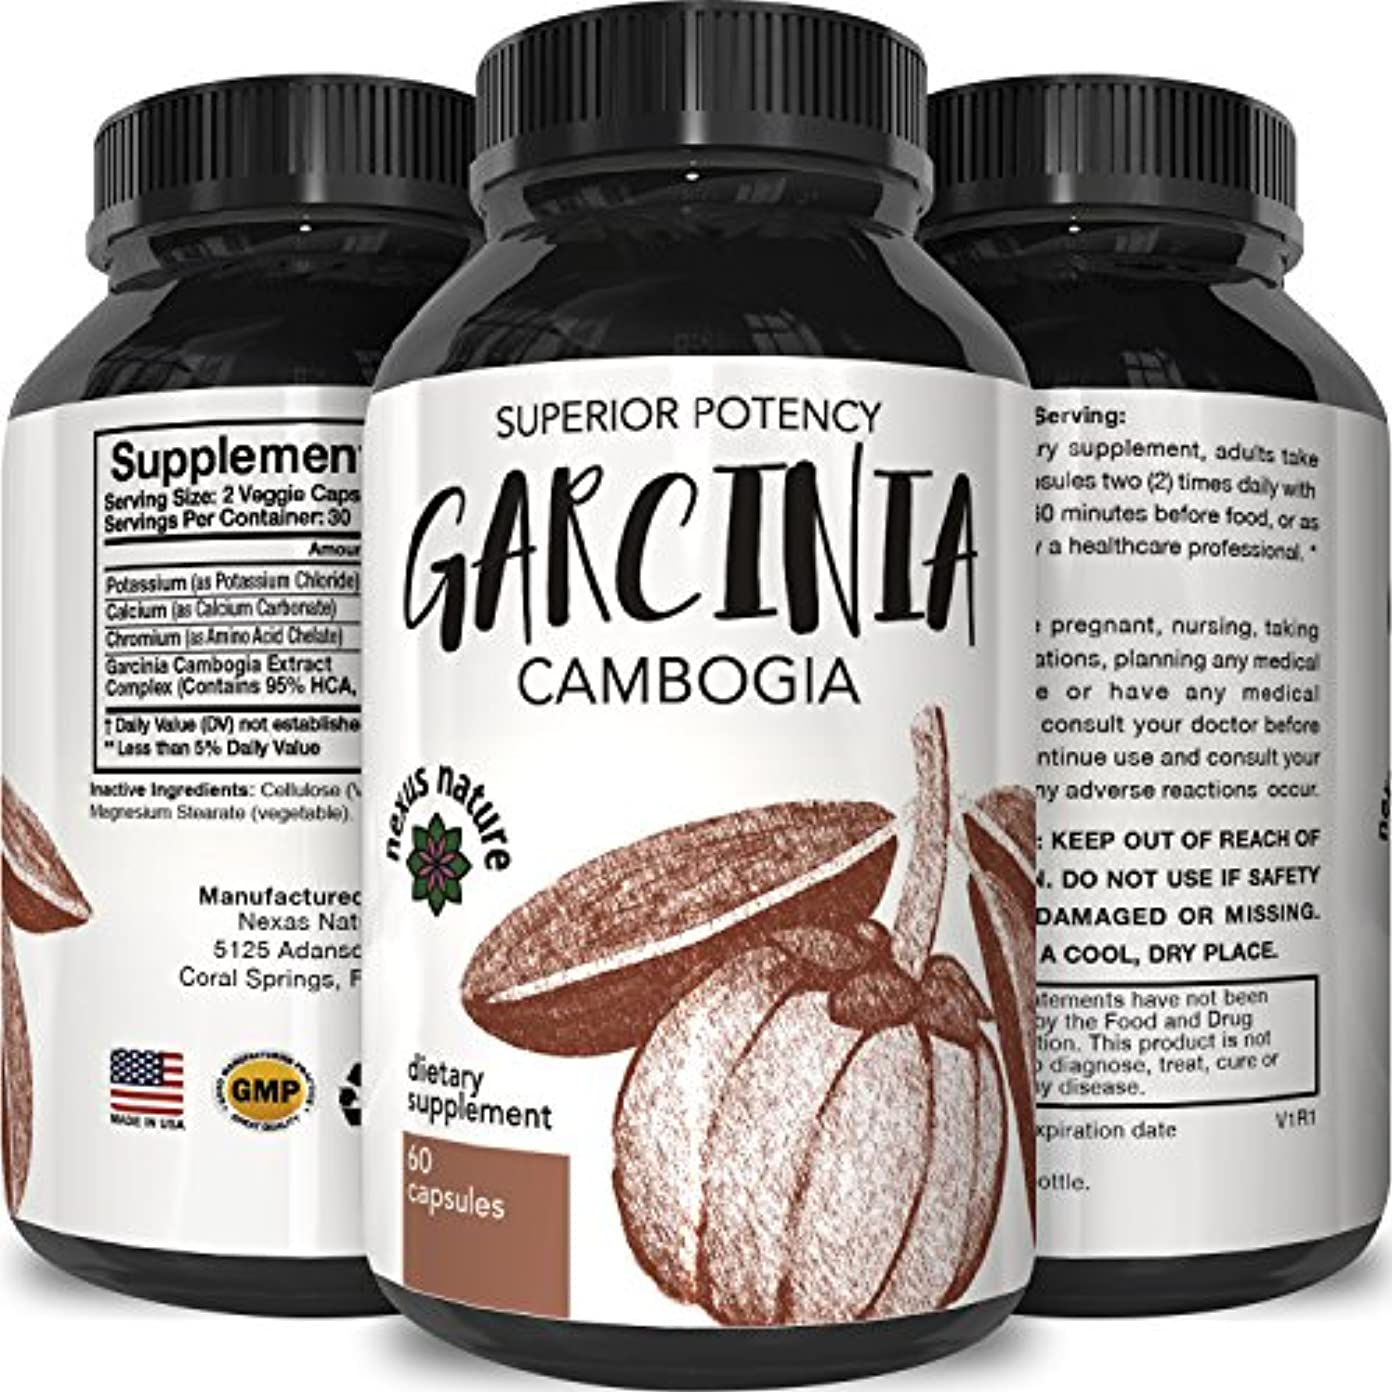 厚くするポテト太いNature's Design Garcinia Cambogia 60 caps CONTAINS 95% HCA